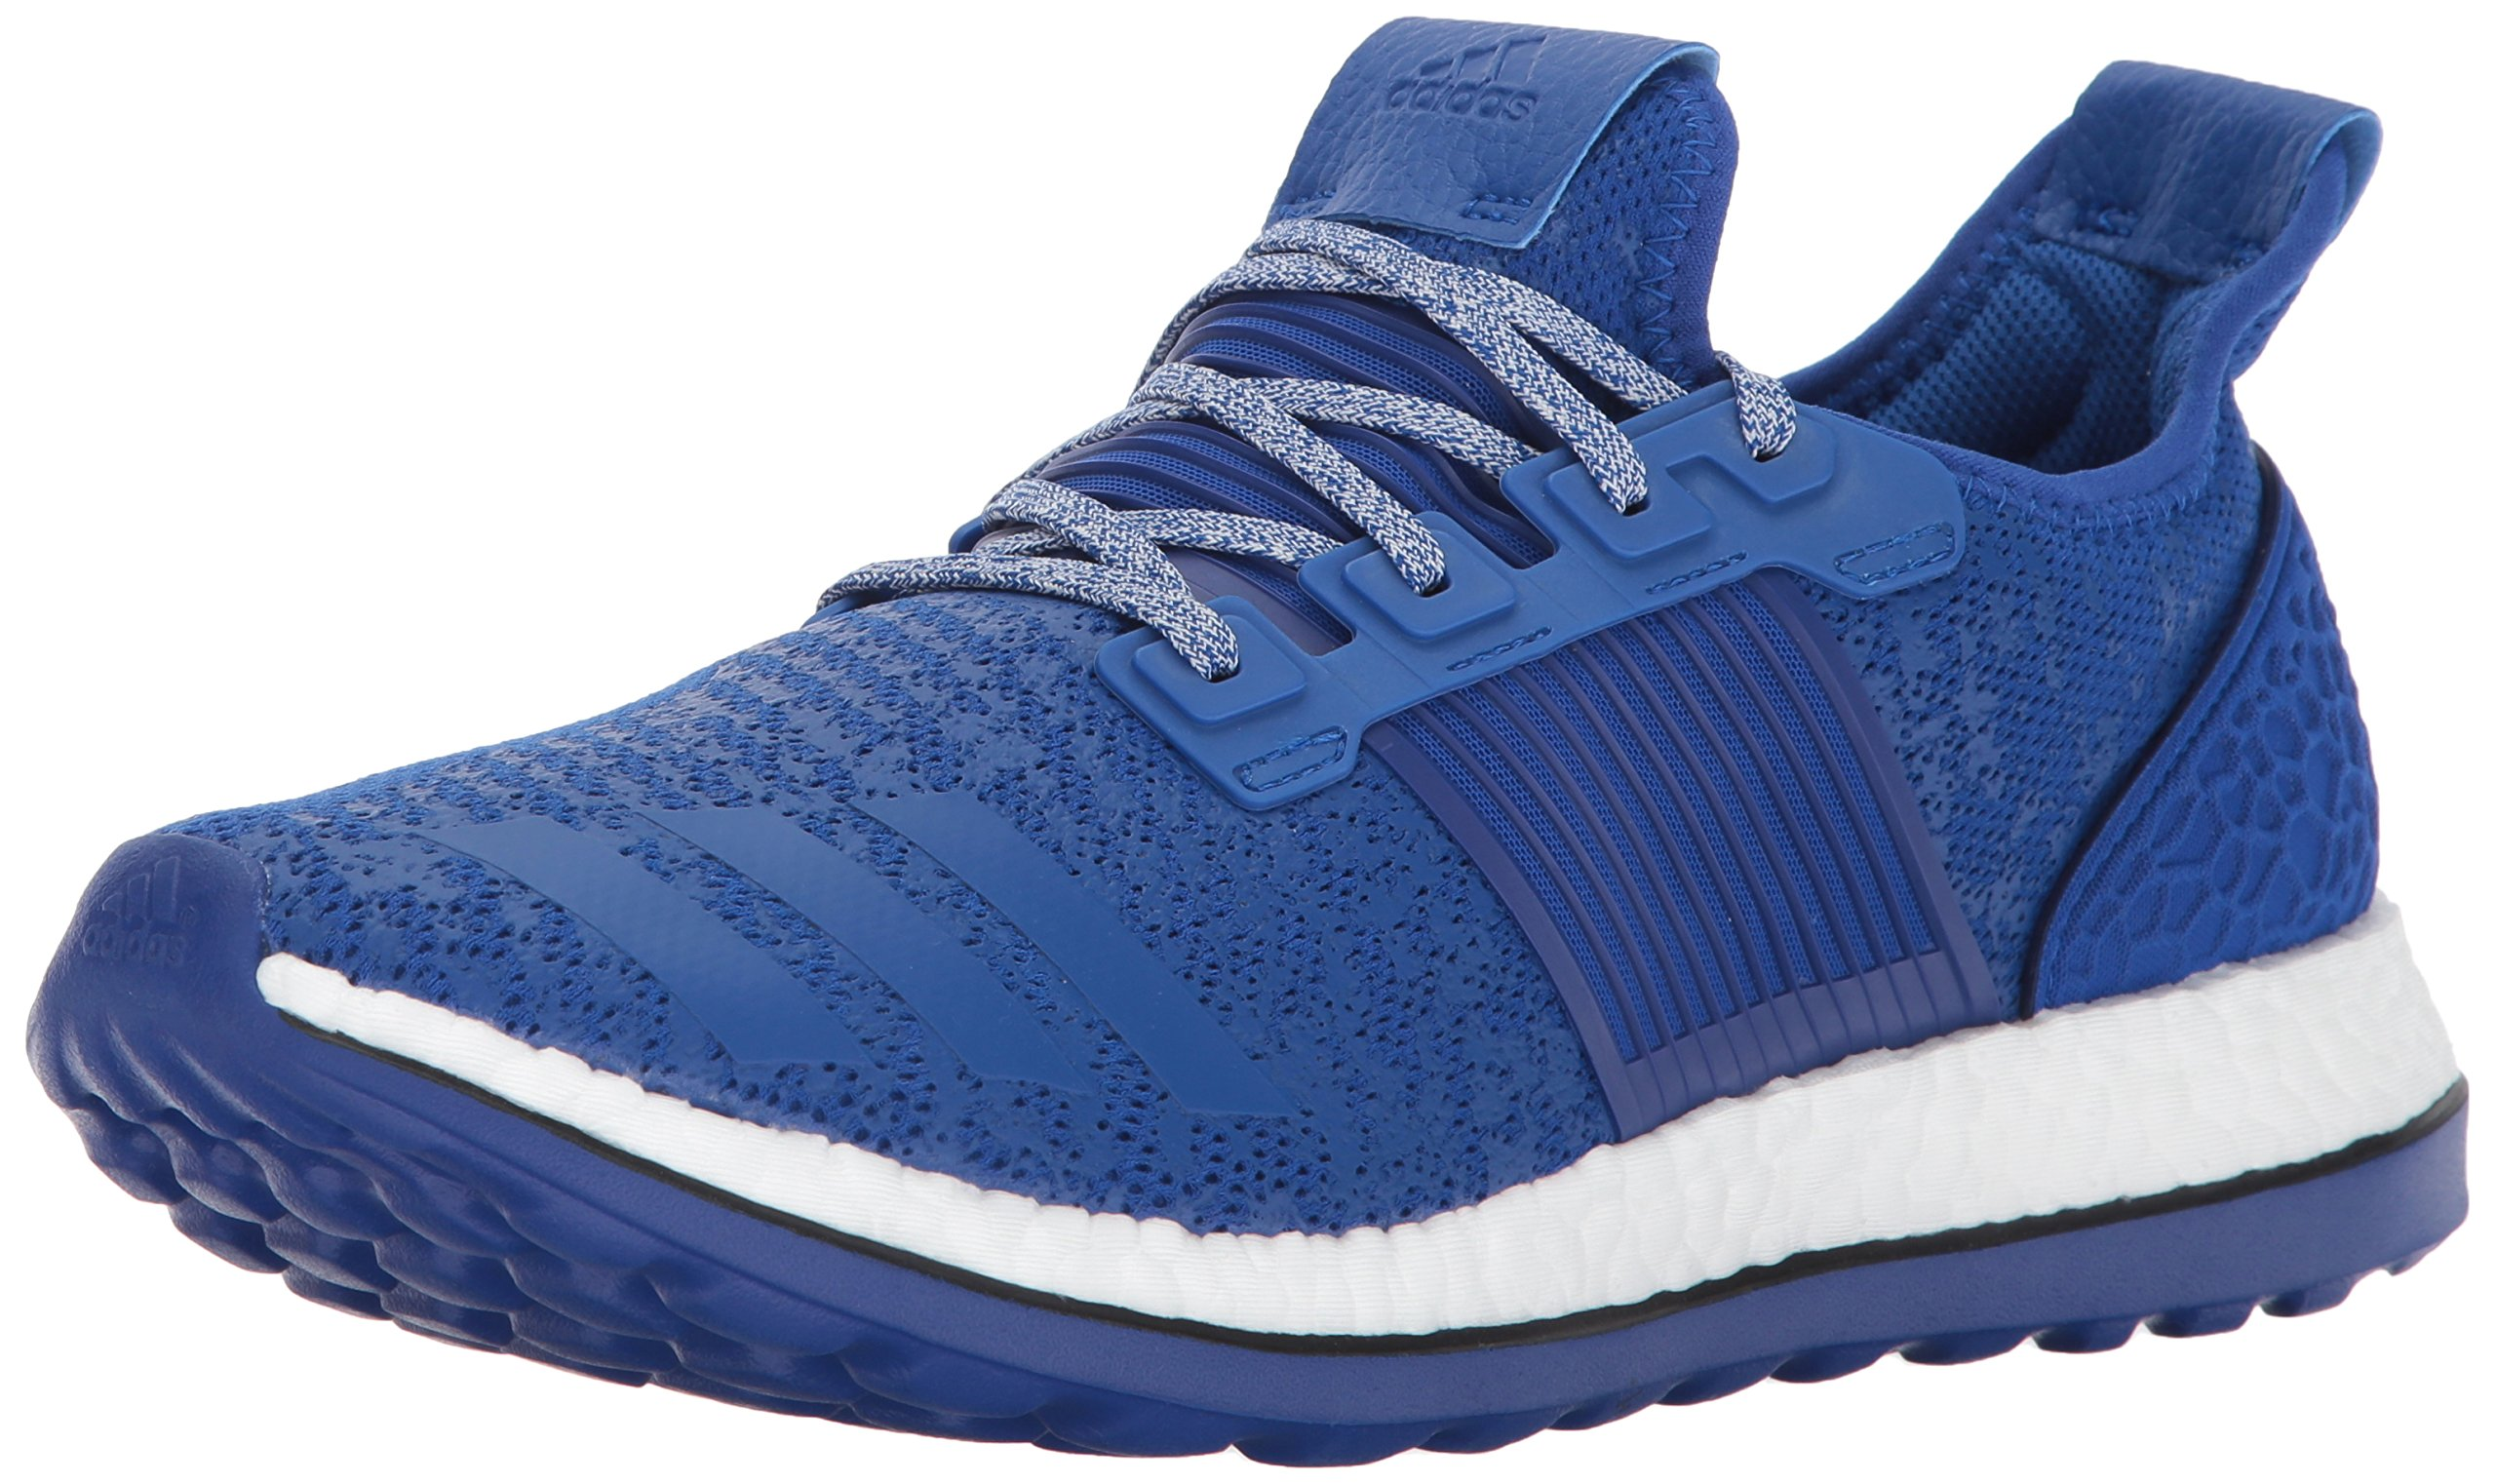 buy popular 856d3 e360f Galleon - Adidas Men s Pureboost ZG M Running Shoe, Collegiate Royal White,  13 M US